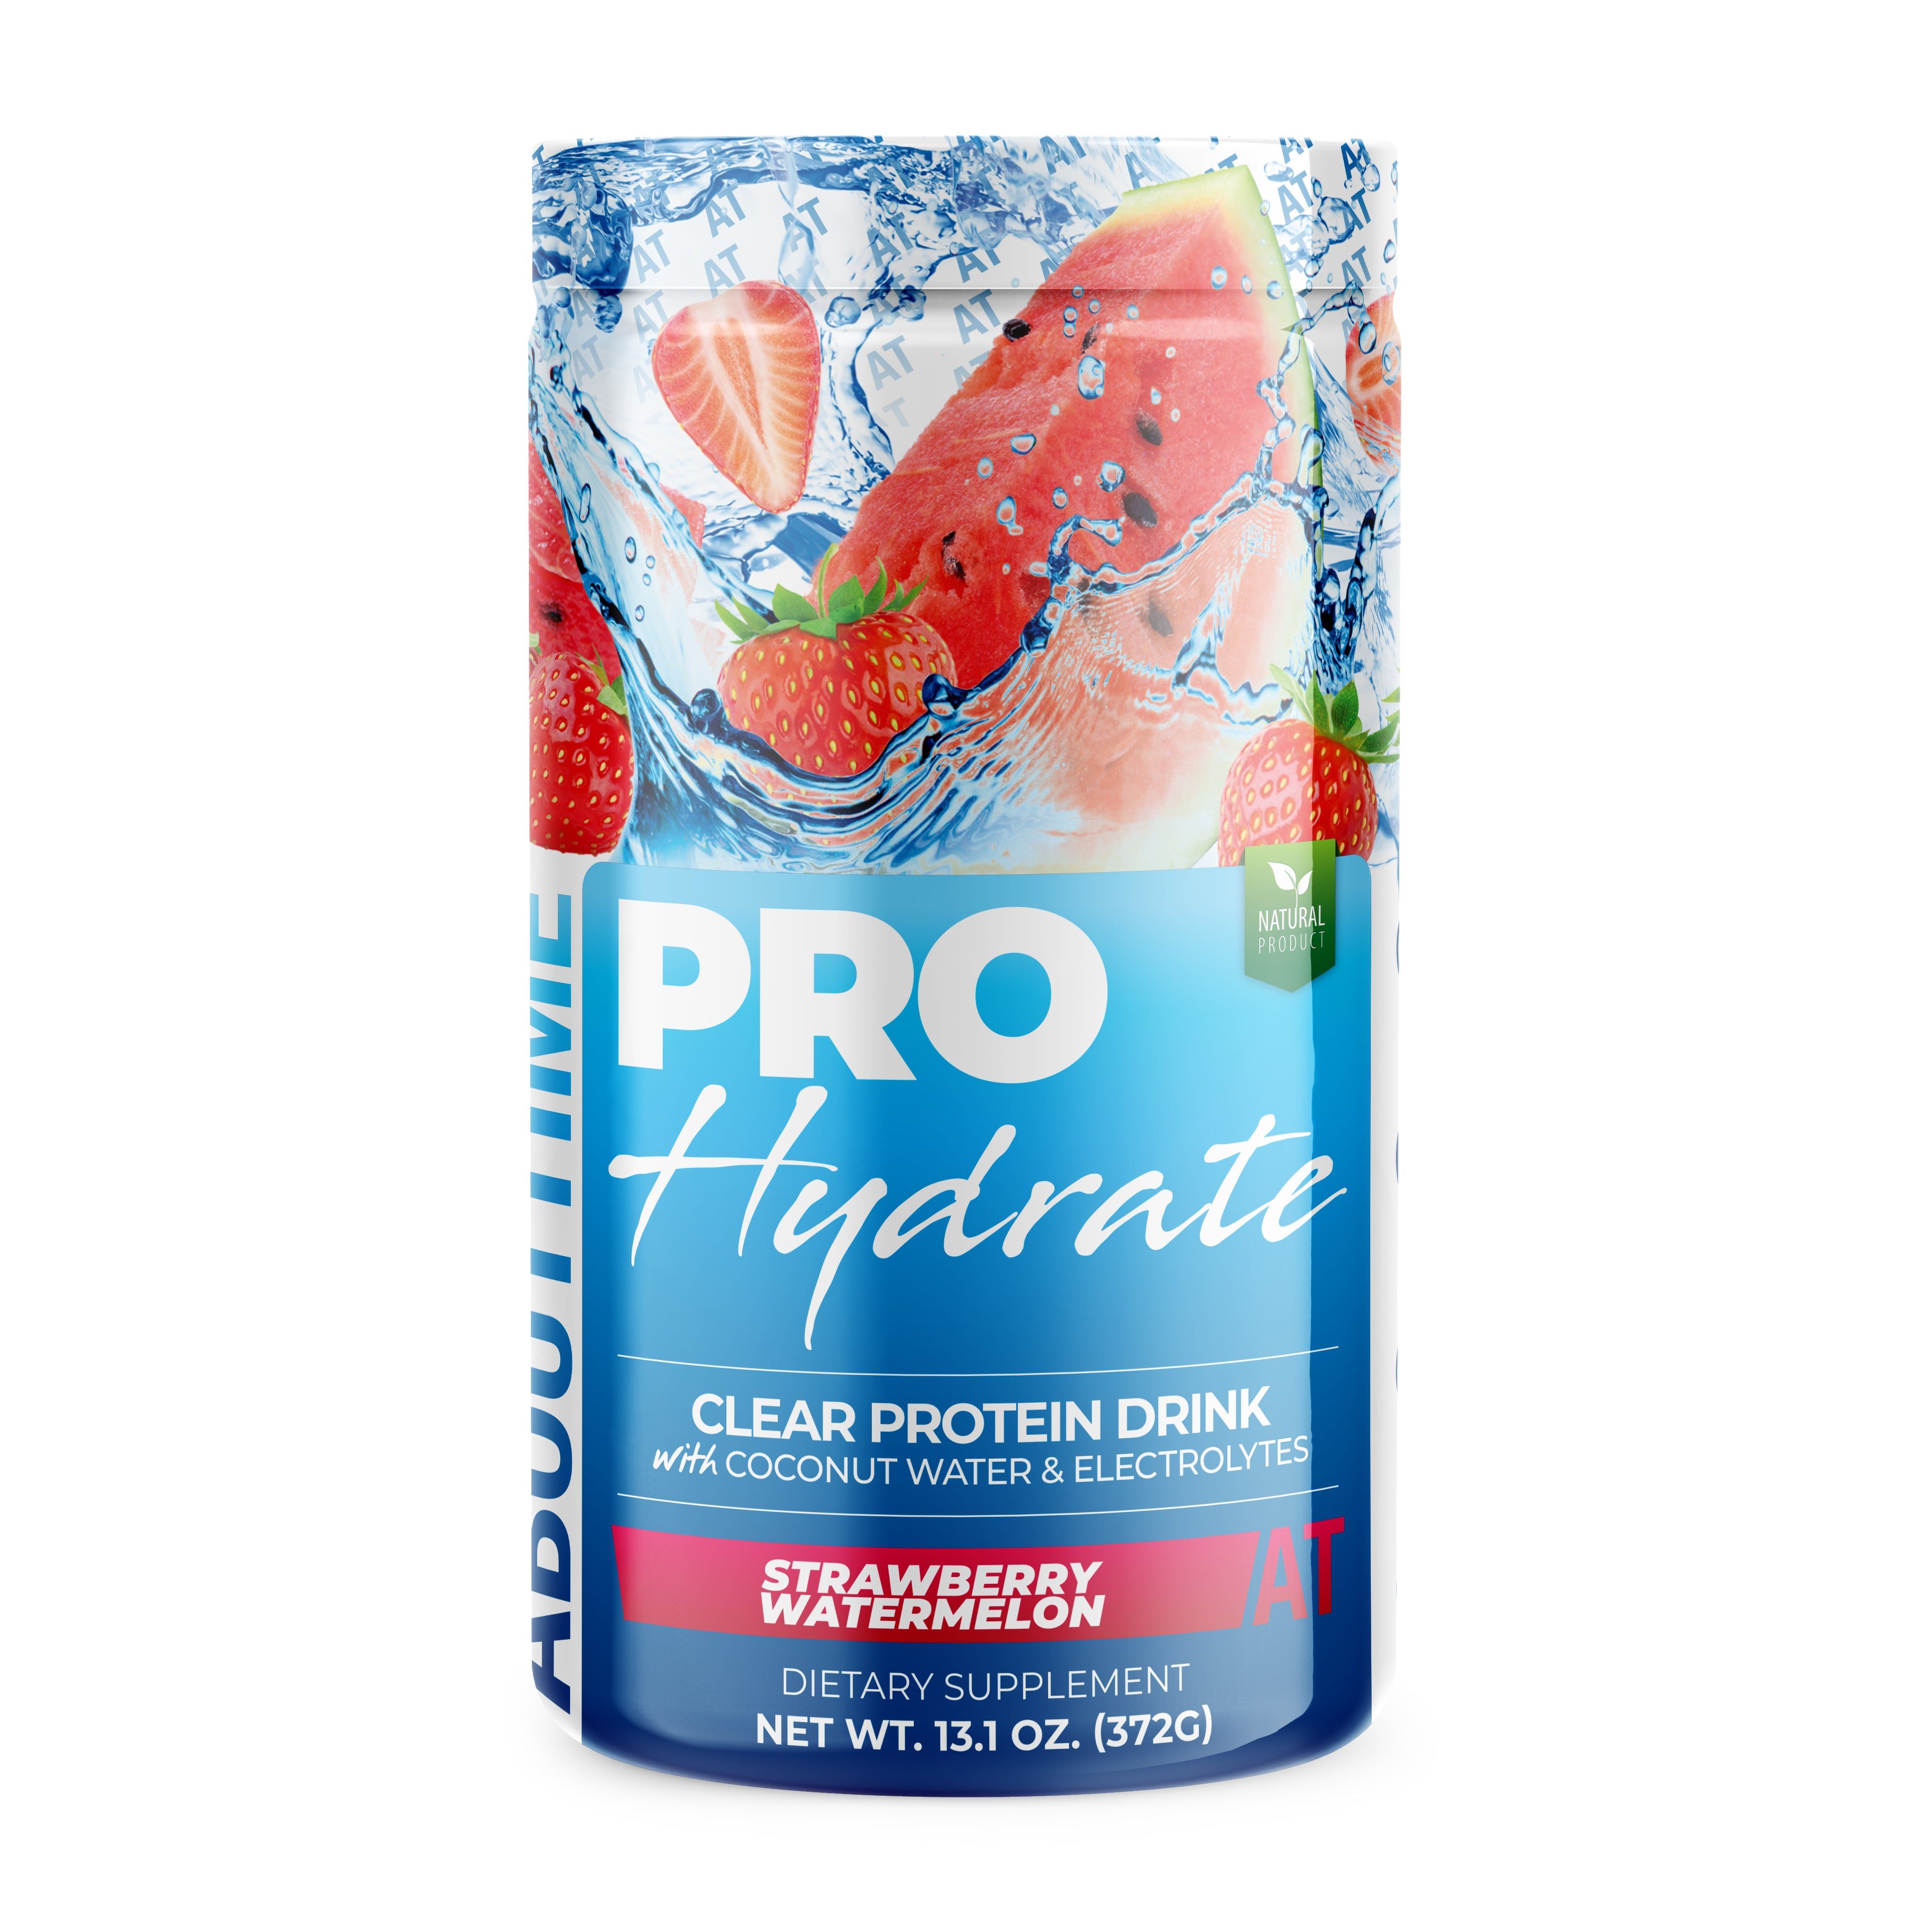 PRO Hydrate Clear Protein Drink